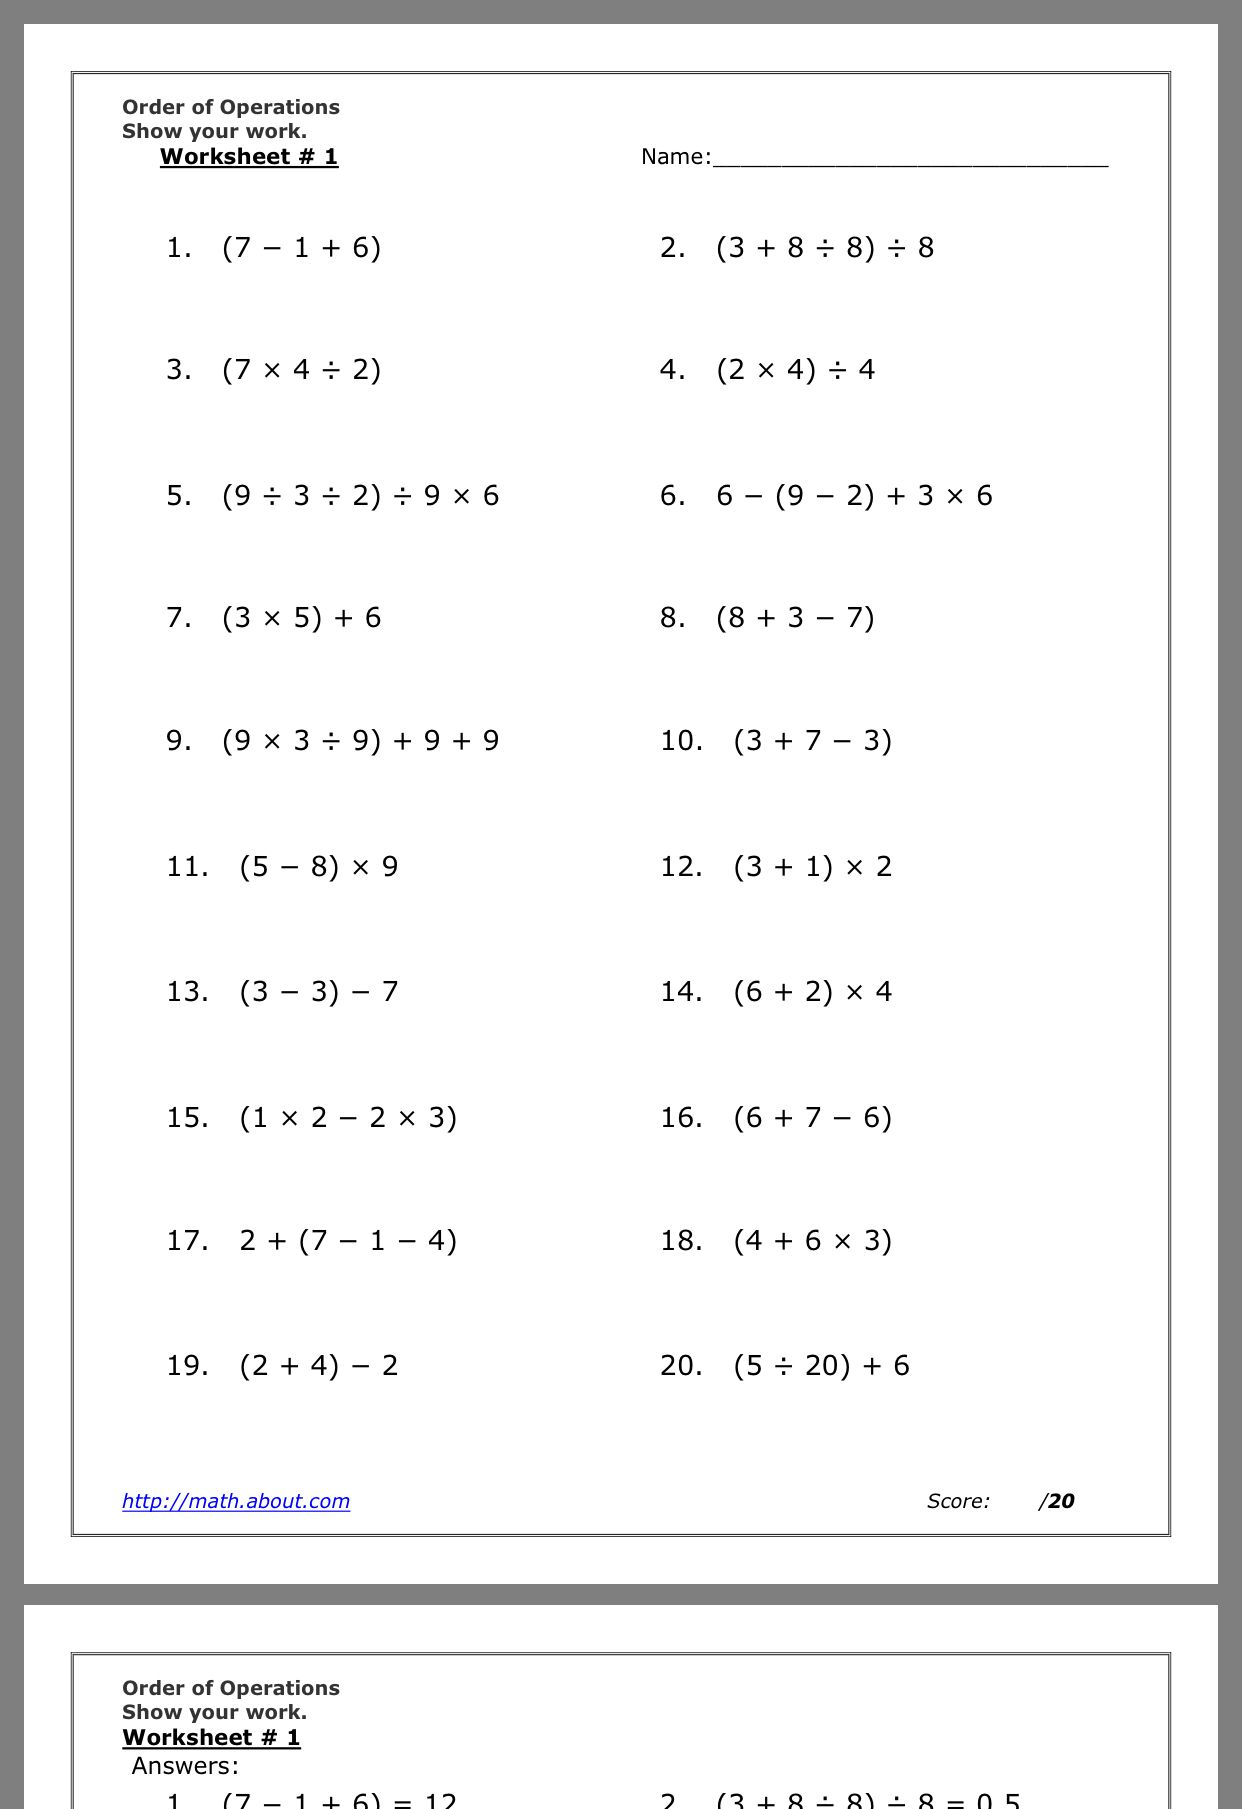 medium resolution of Pin by catherine huang on Math   Order of operations